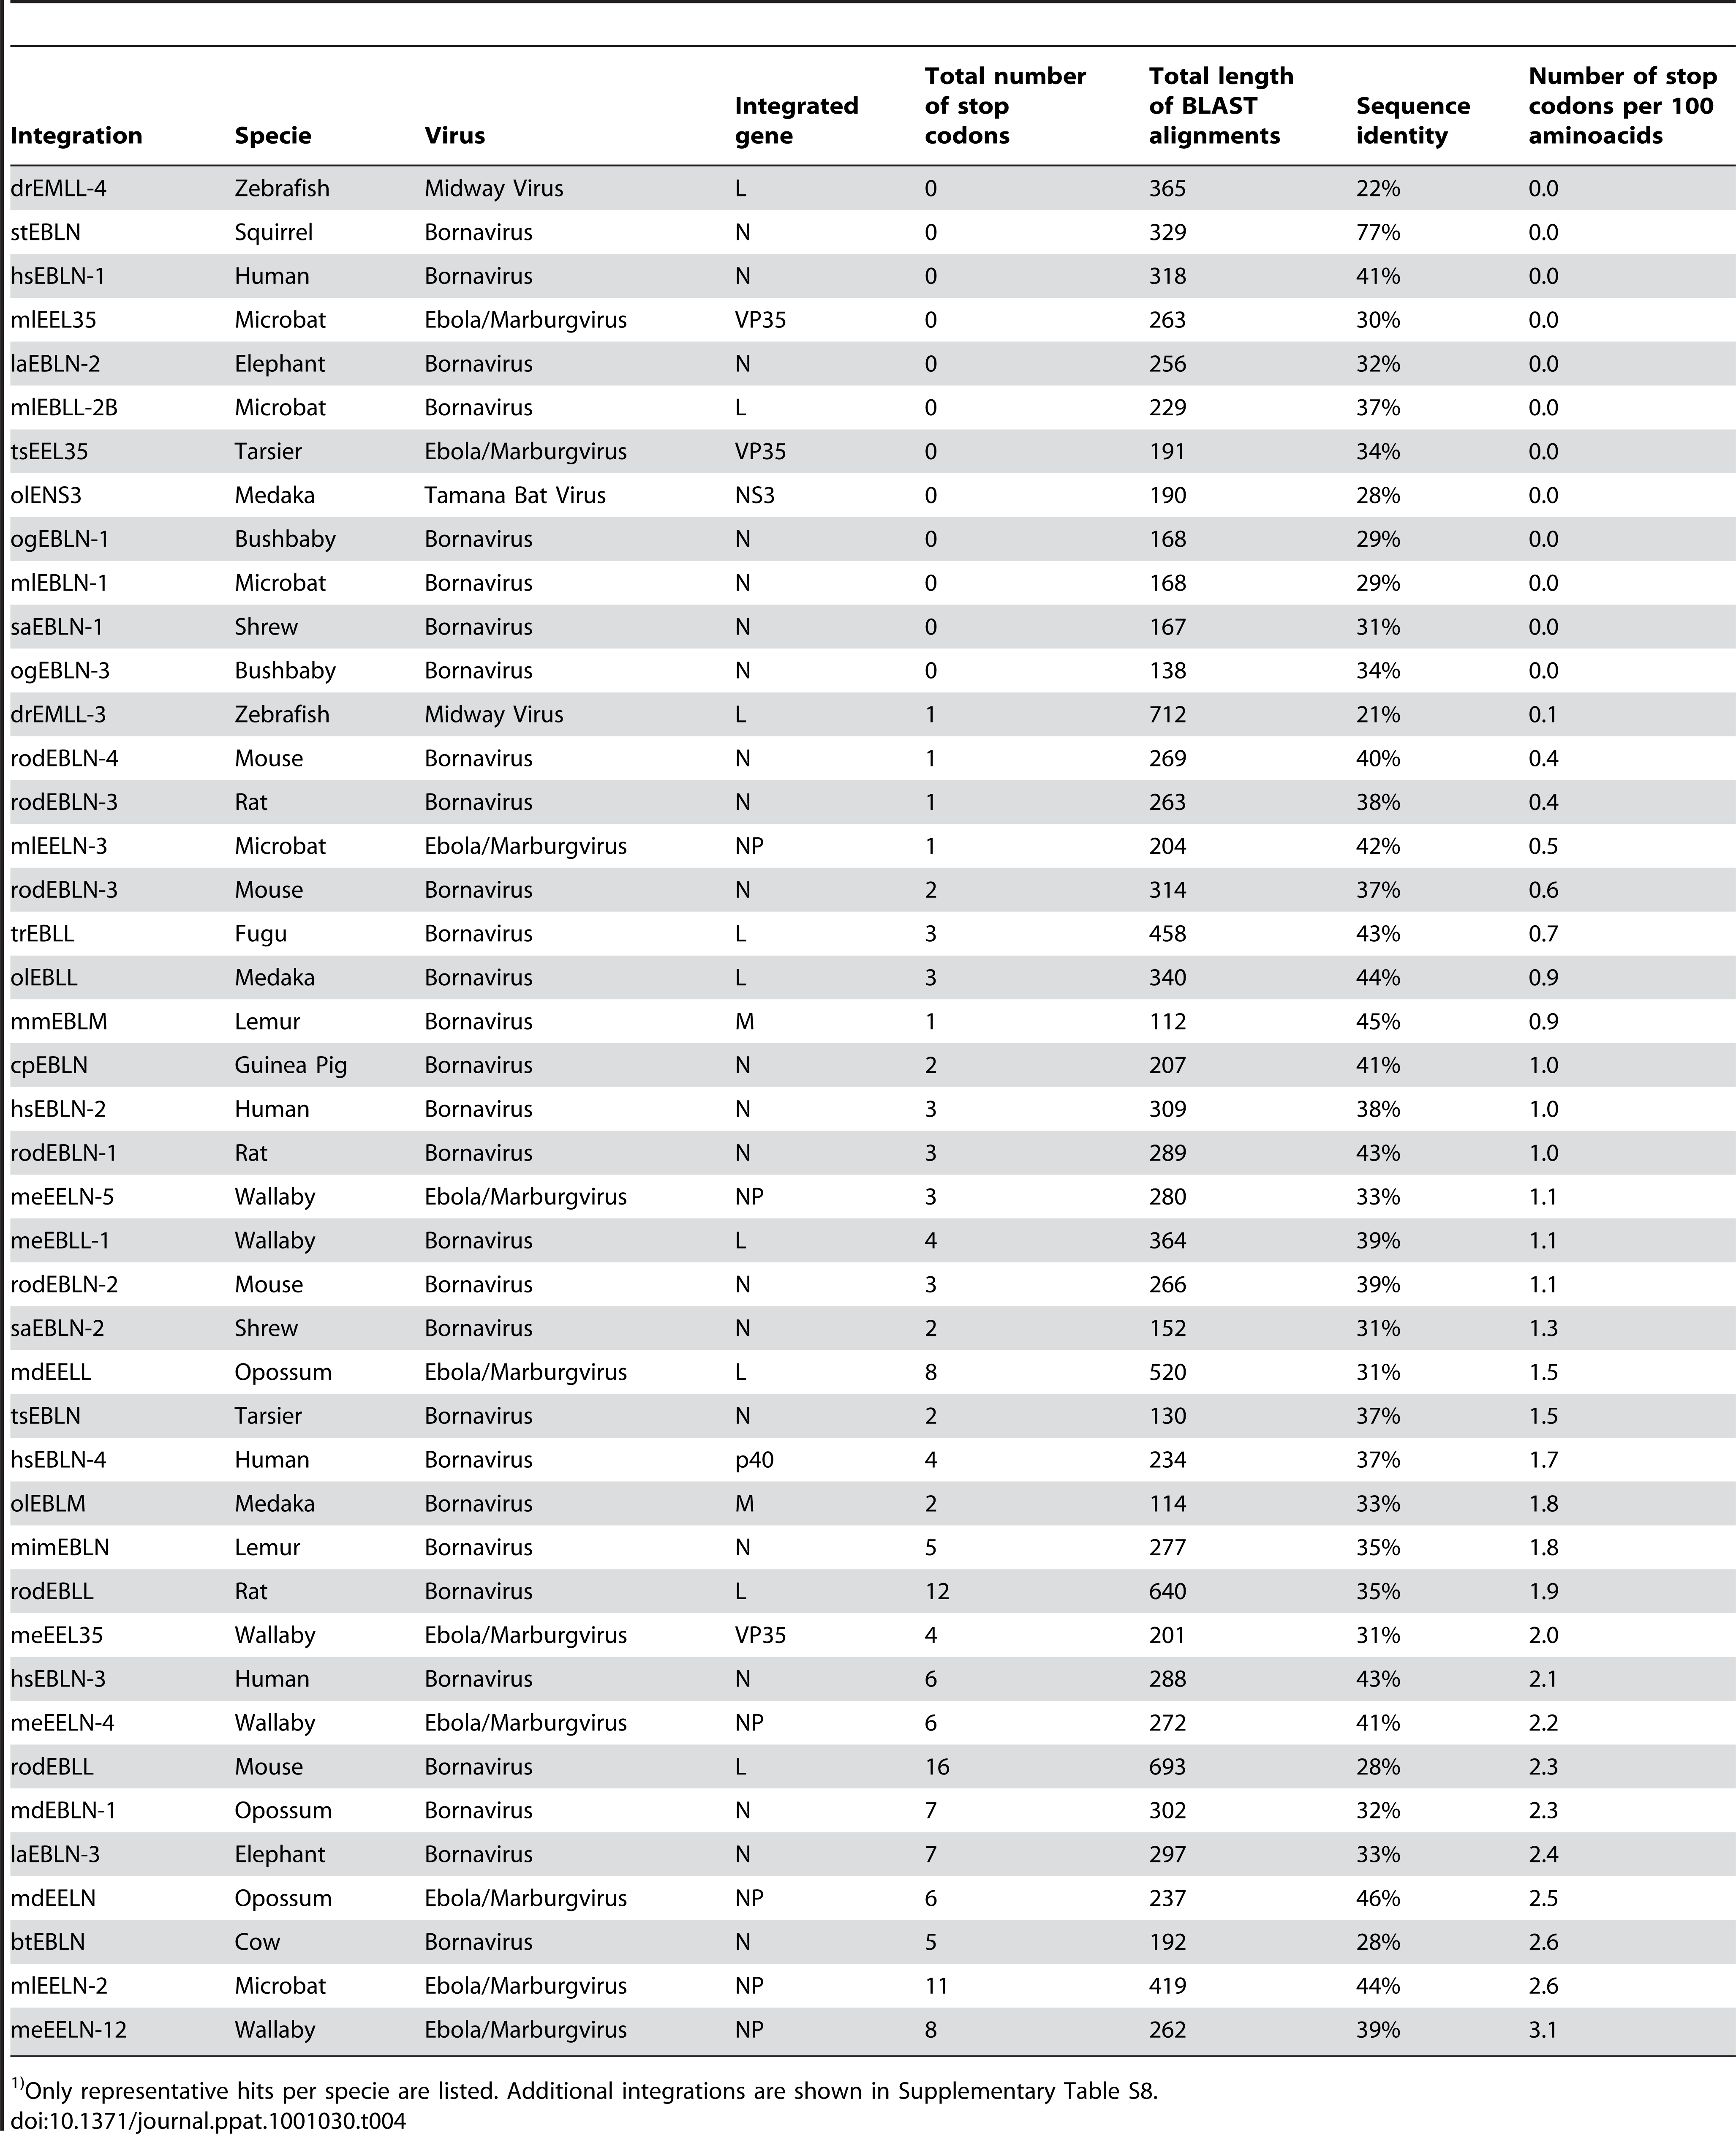 List of representative vertebrate integrations found by BLAST search and total number of stop codons inside aligned peptide regions.<em class=&quot;ref&quot;>1)</em>